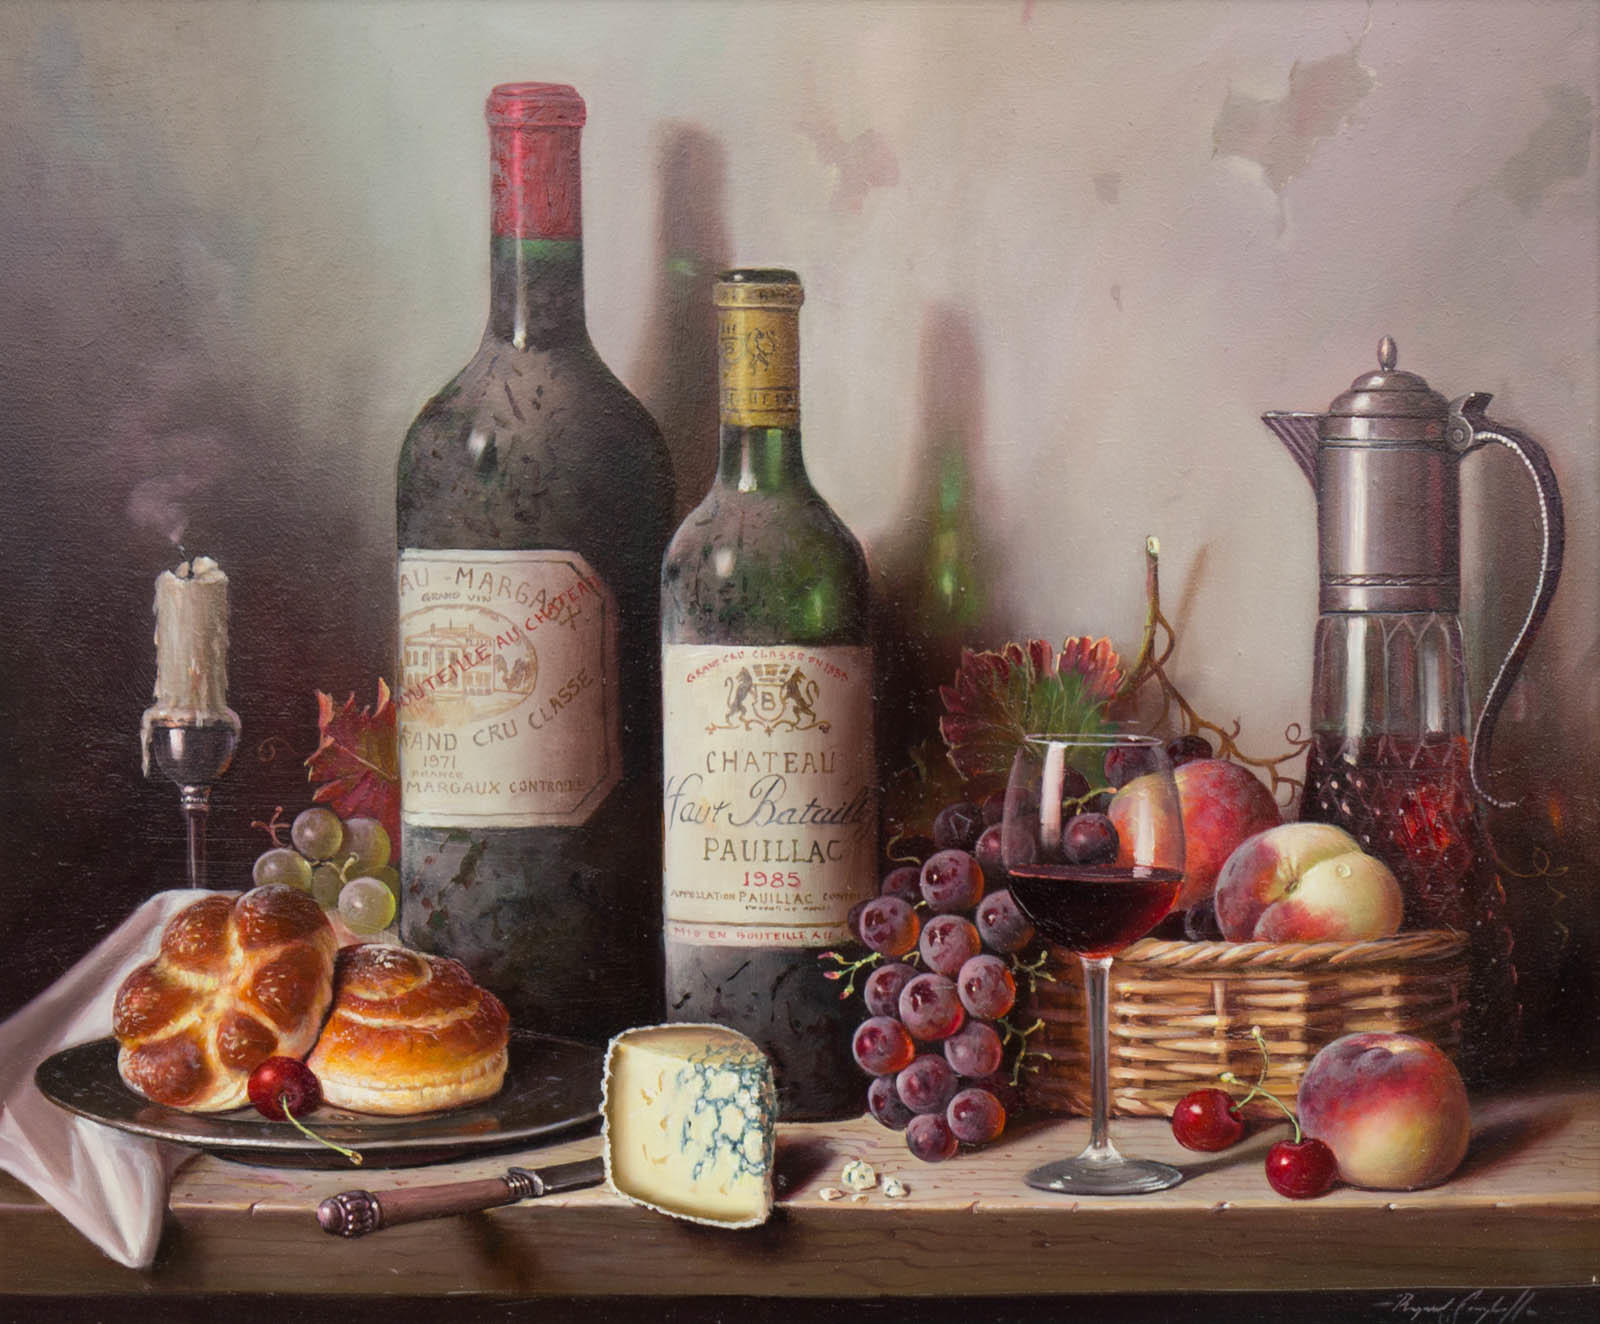 raymond campbell paintings, raymond campbell originals, raymond campbell wine bottles, raymond campbell artist